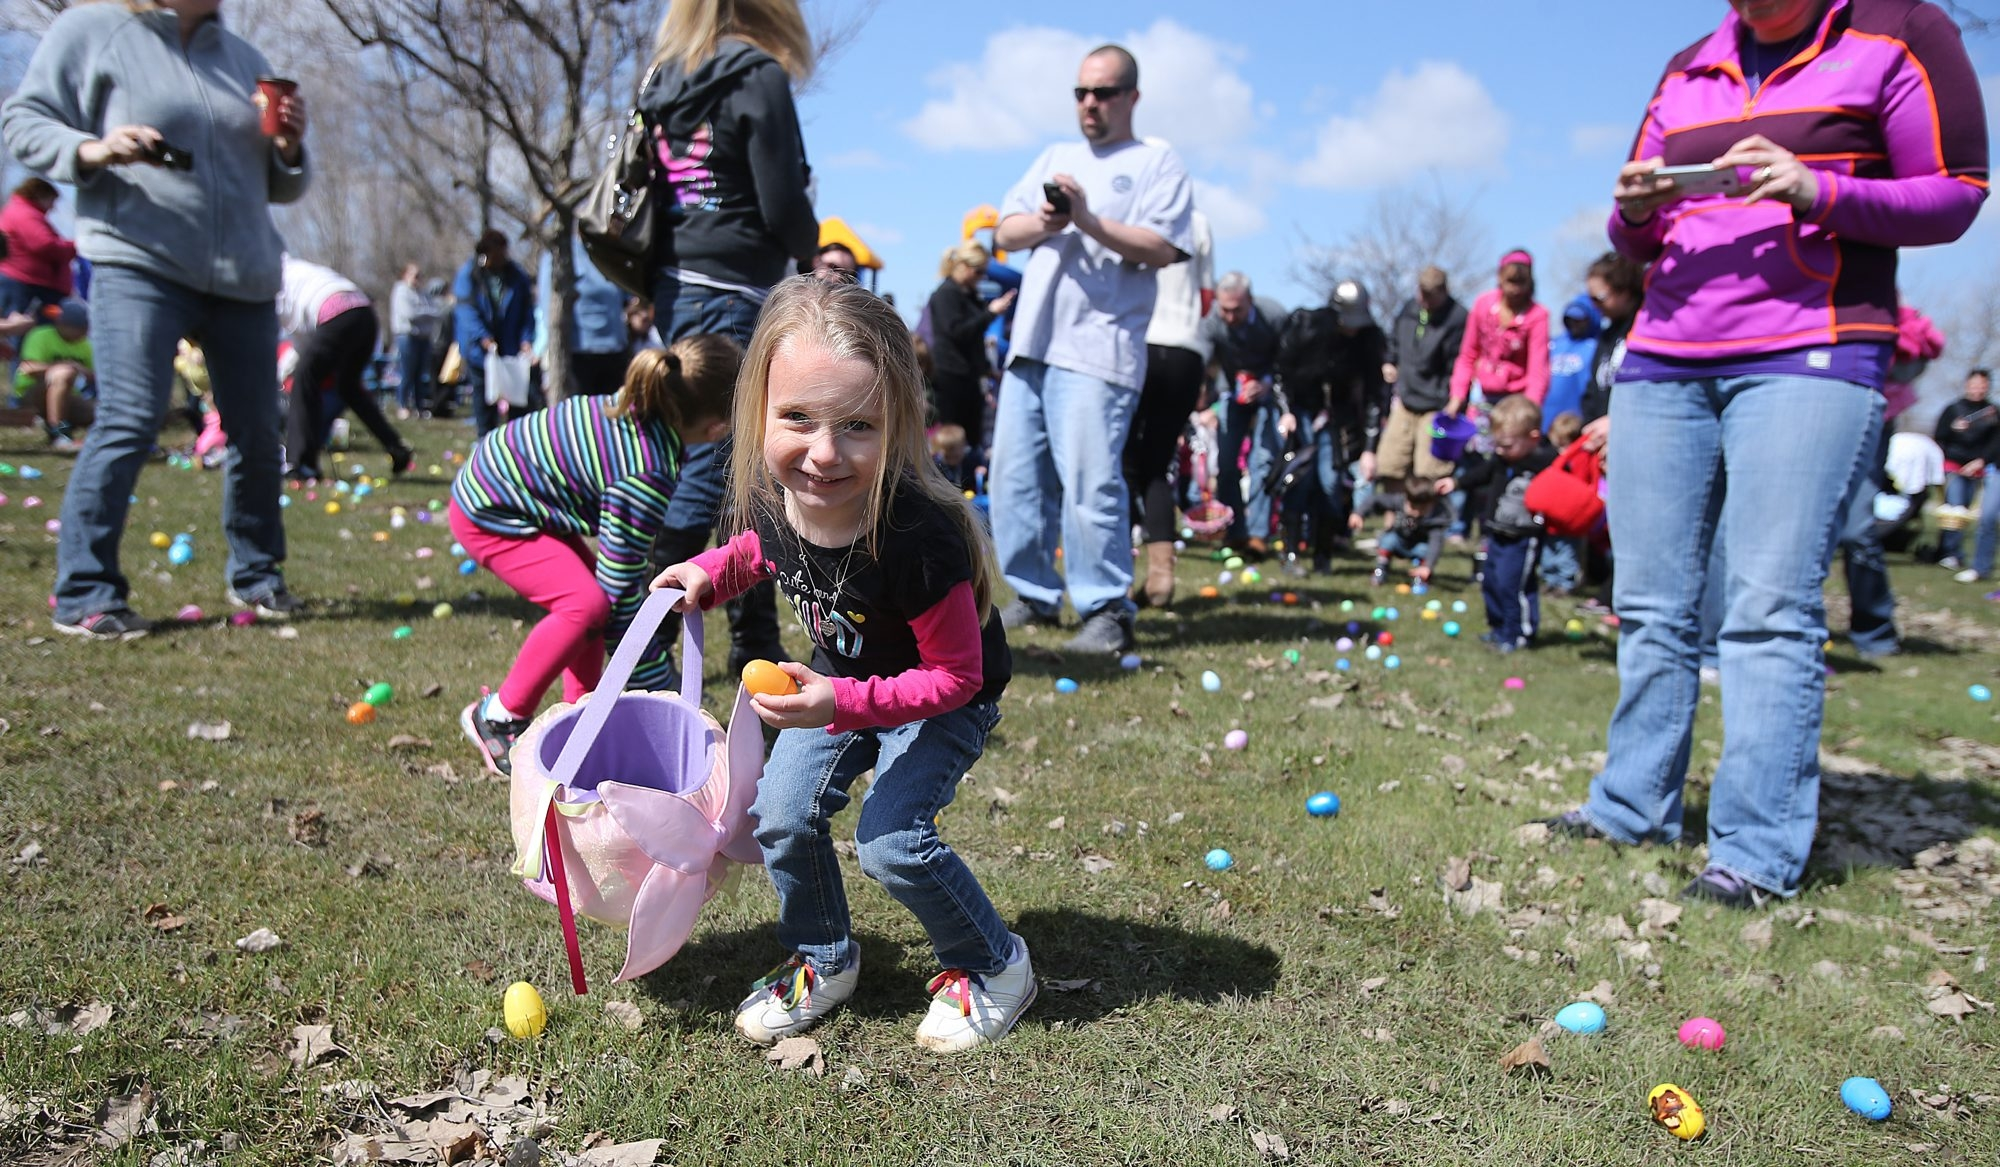 Tayen Perkins, 3, of West Seneca, gets ready to scoop up Easter eggs in Harlem Road Park in West Seneca on Saturday. It was a cool but brilliantly sunny day, perfect for discovering spring treasures.